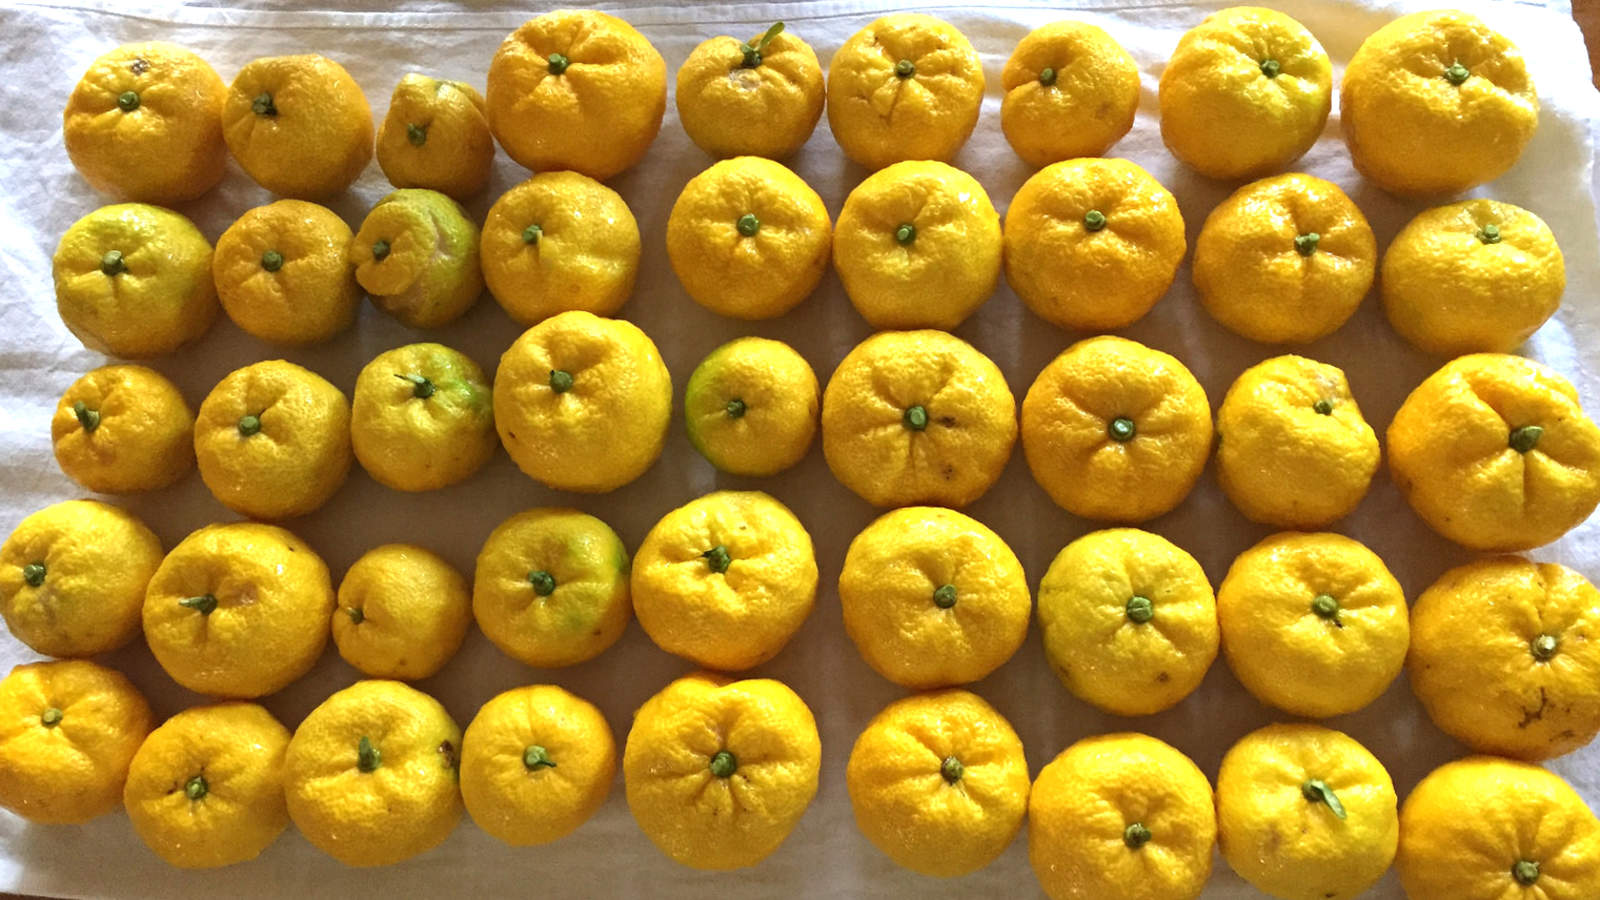 Yuzu, ユズ (Japanese Lemon)